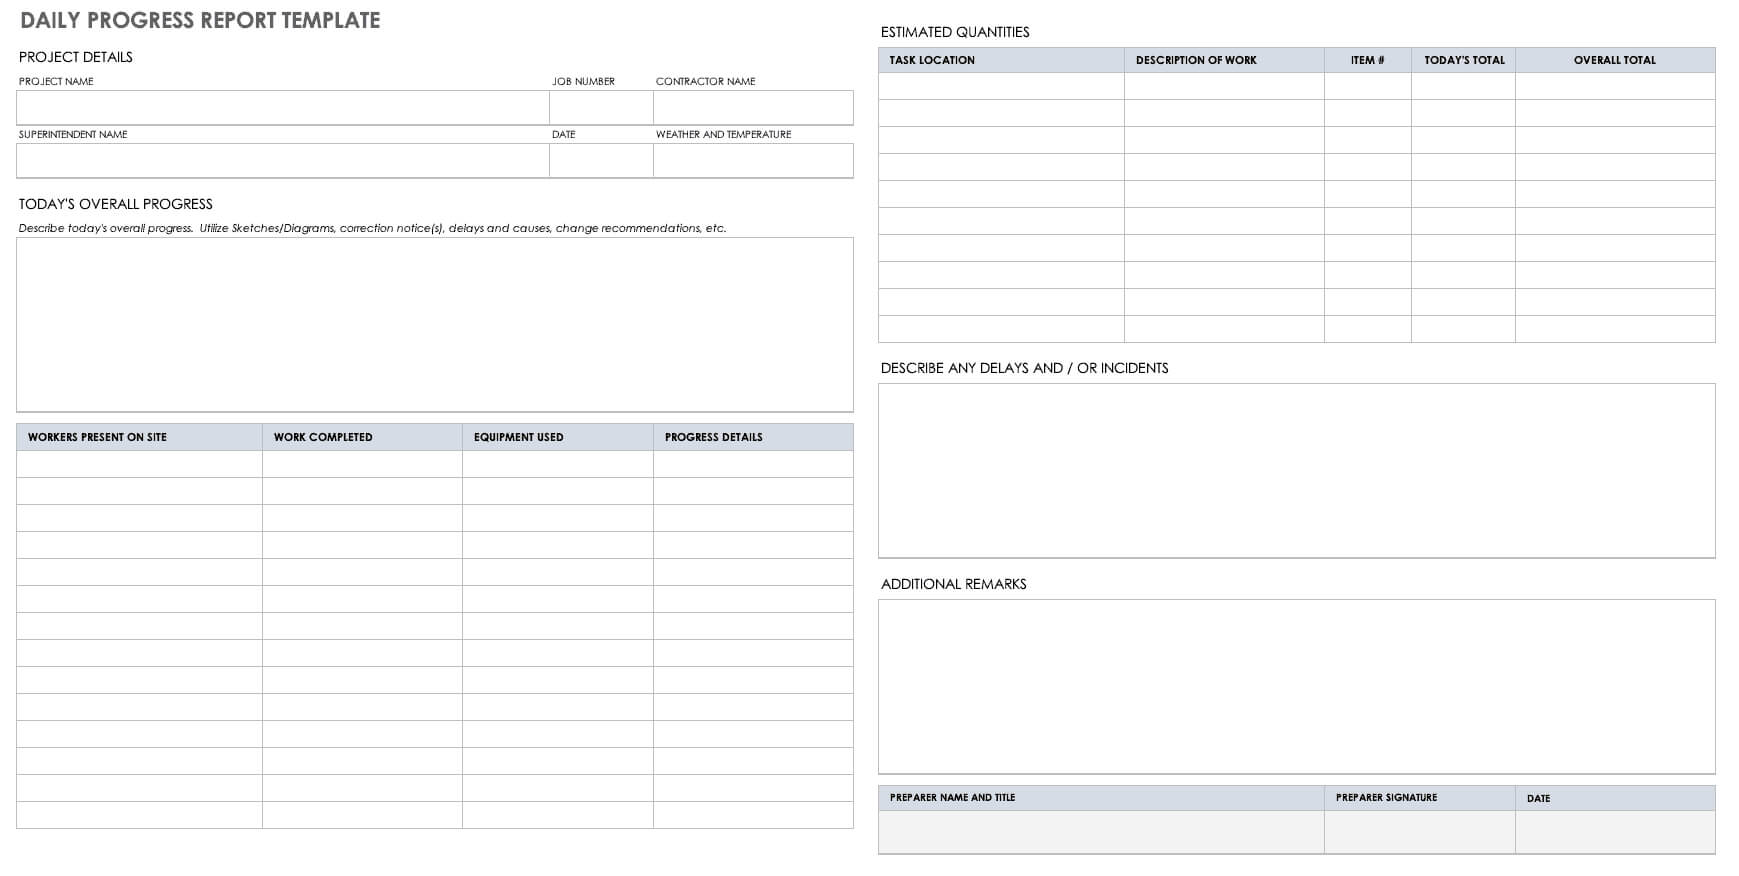 010 Template Ideas Ic Daily Project Progress Report Format With Regard To Daily Project Status Report Template